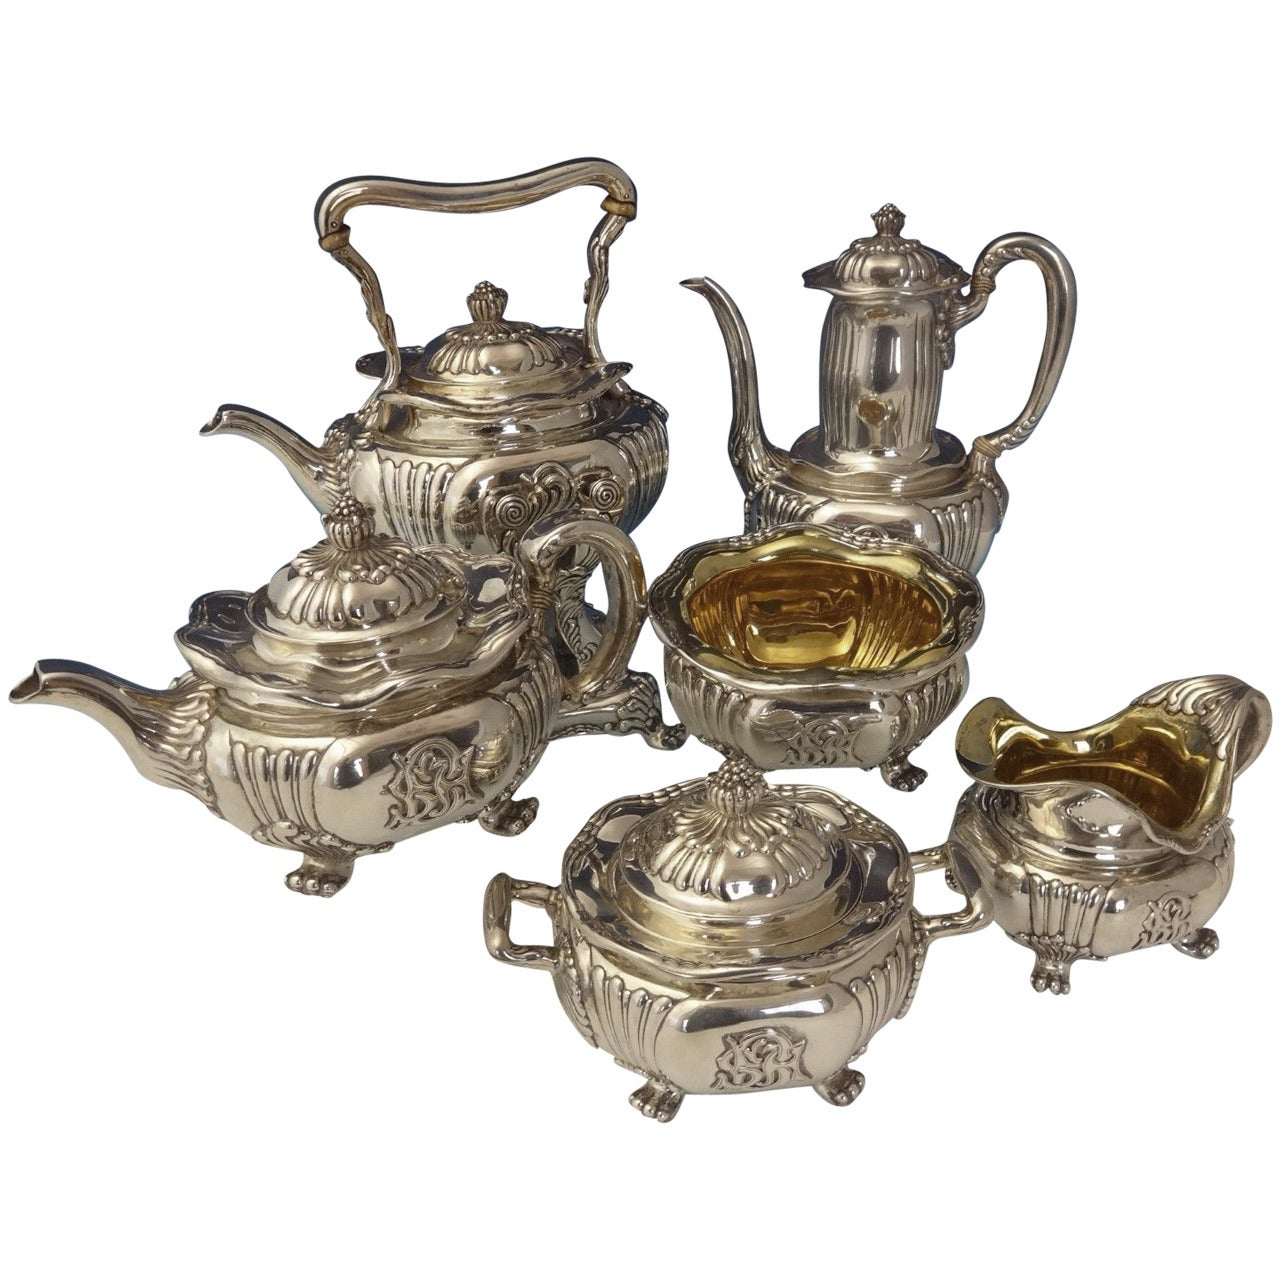 Tiffany & Co. Sterling Silver Tea Six-Piece Set with Chrysanthemums Hollowware